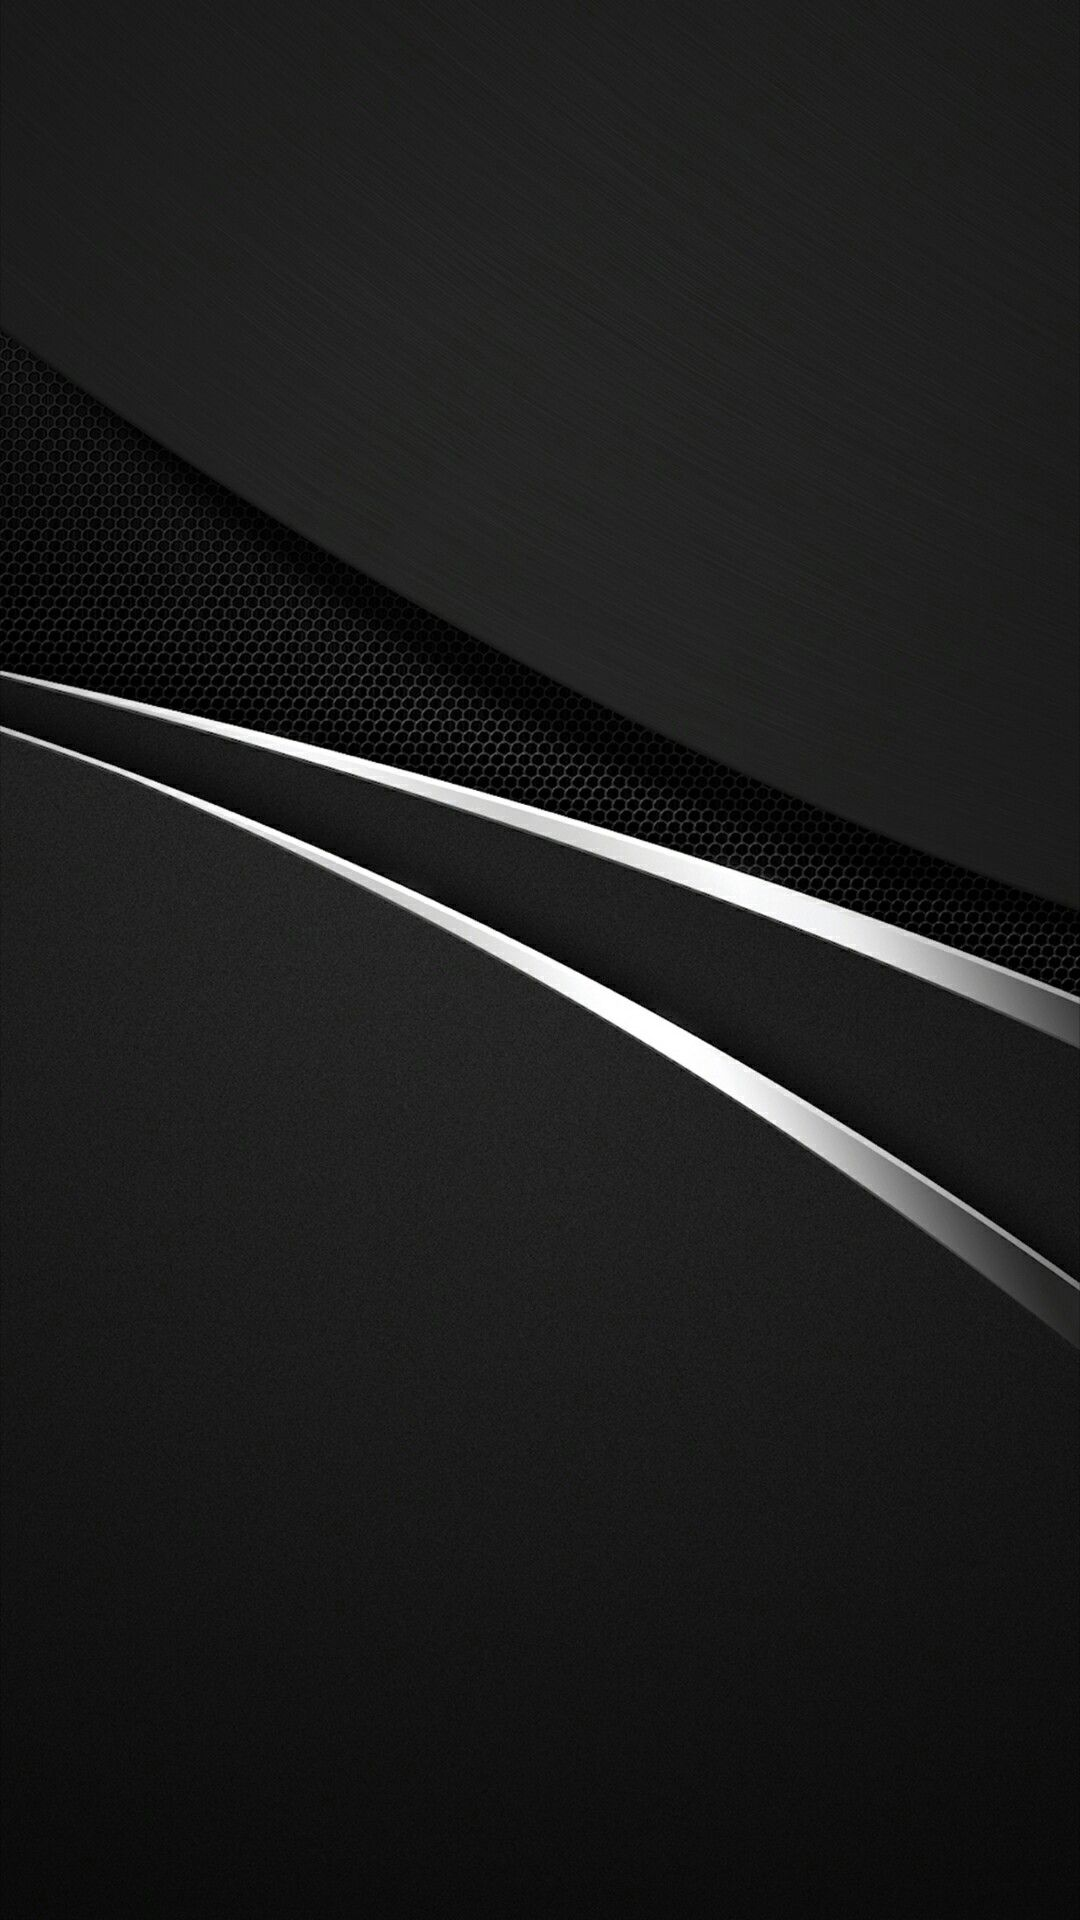 Layered Black Chrome Trim Wallpaper Android Wallpaper Cellphone